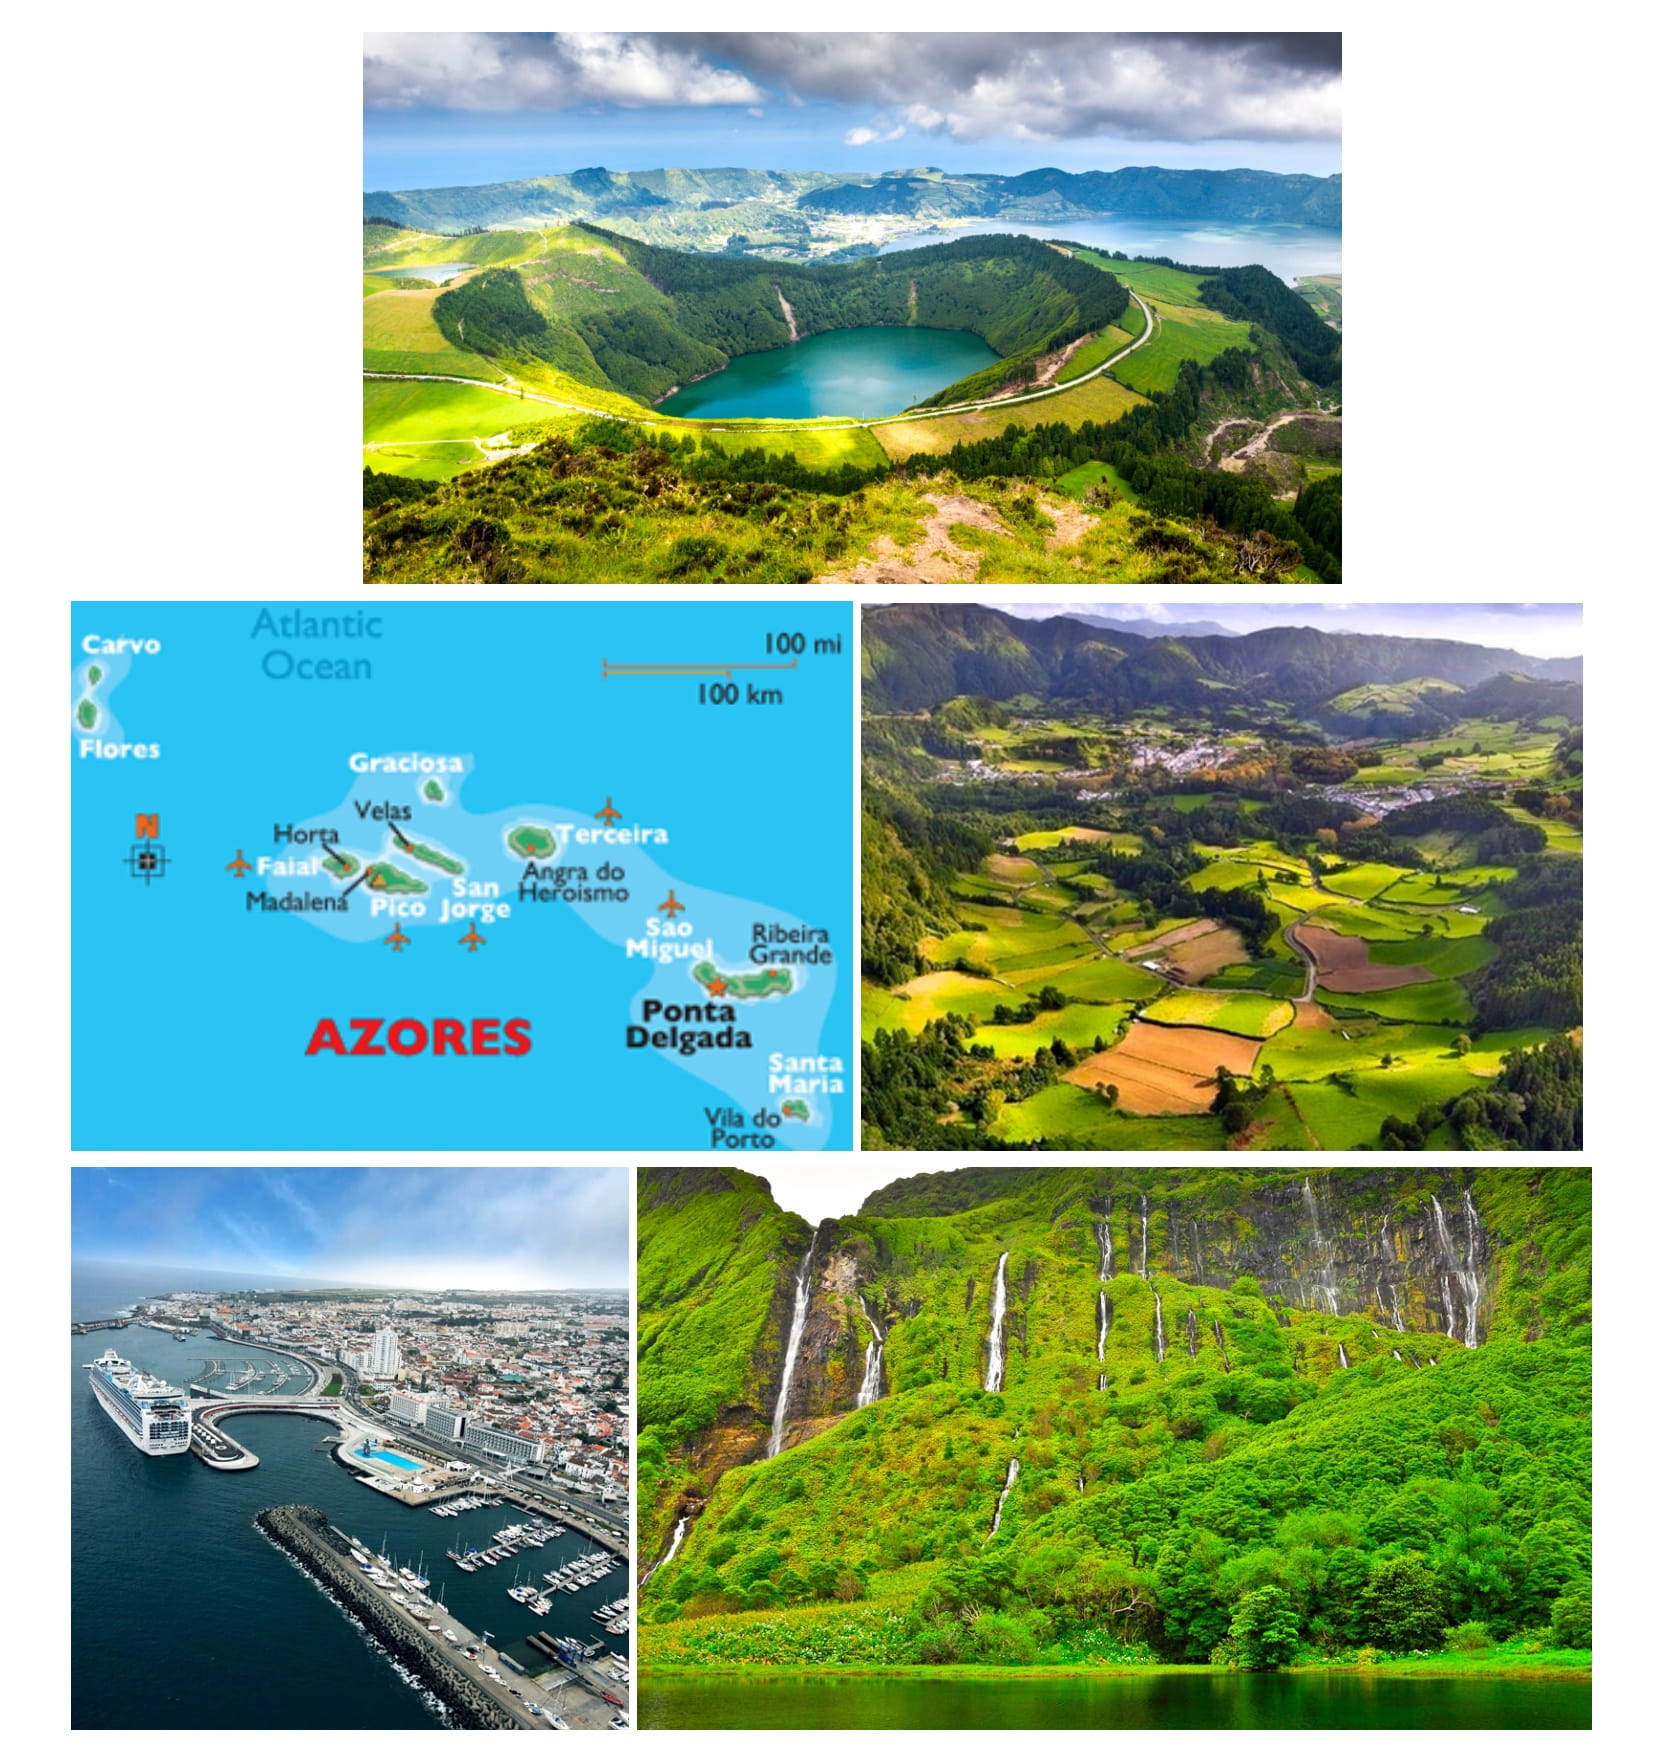 Azores Picture Page-1.jpg